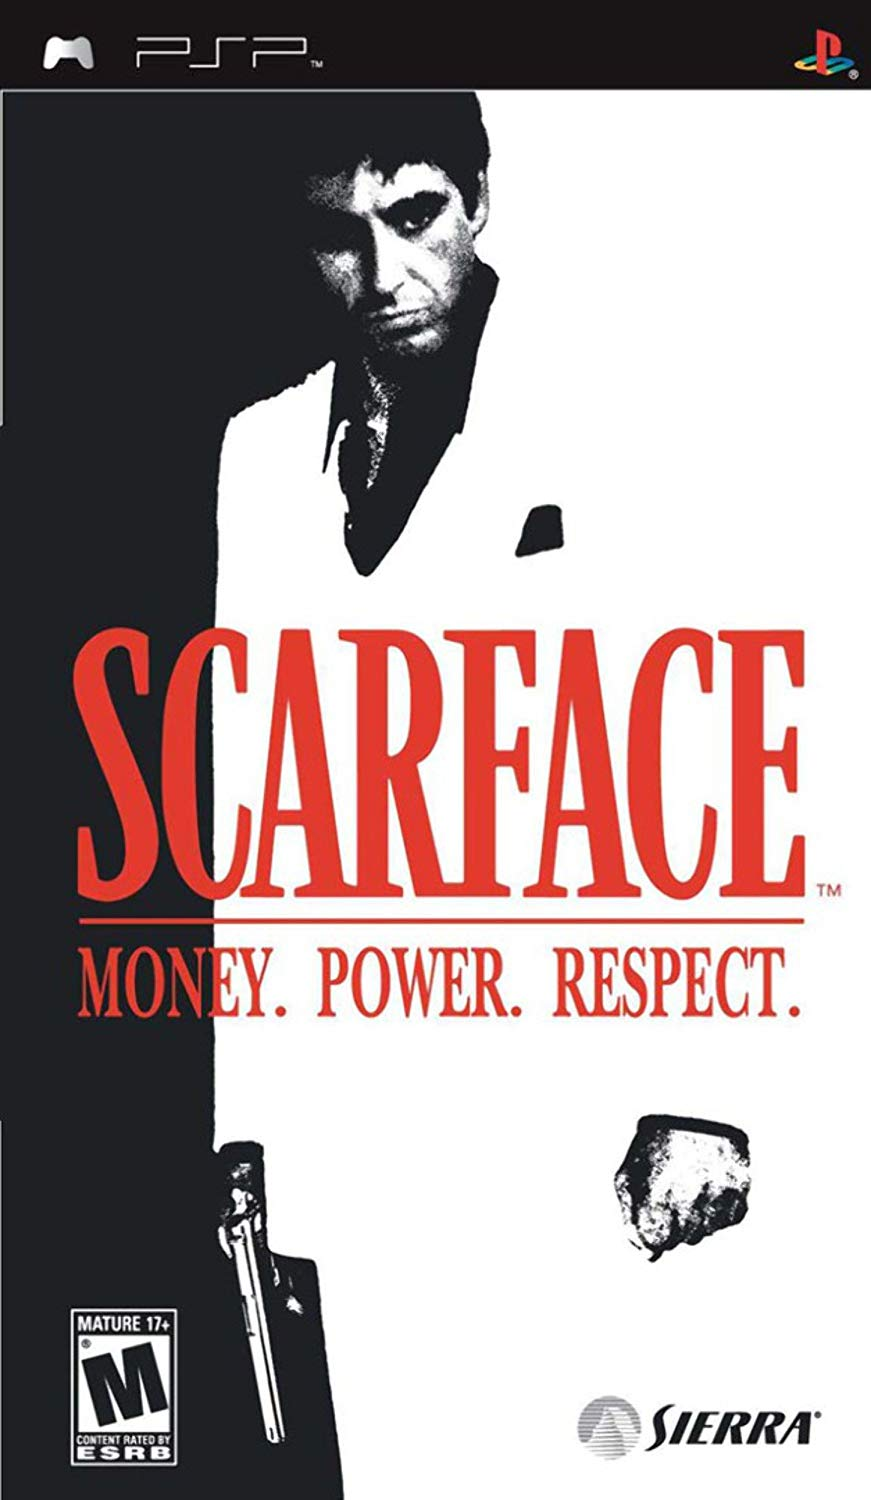 Scarface Money. Power. Respect.